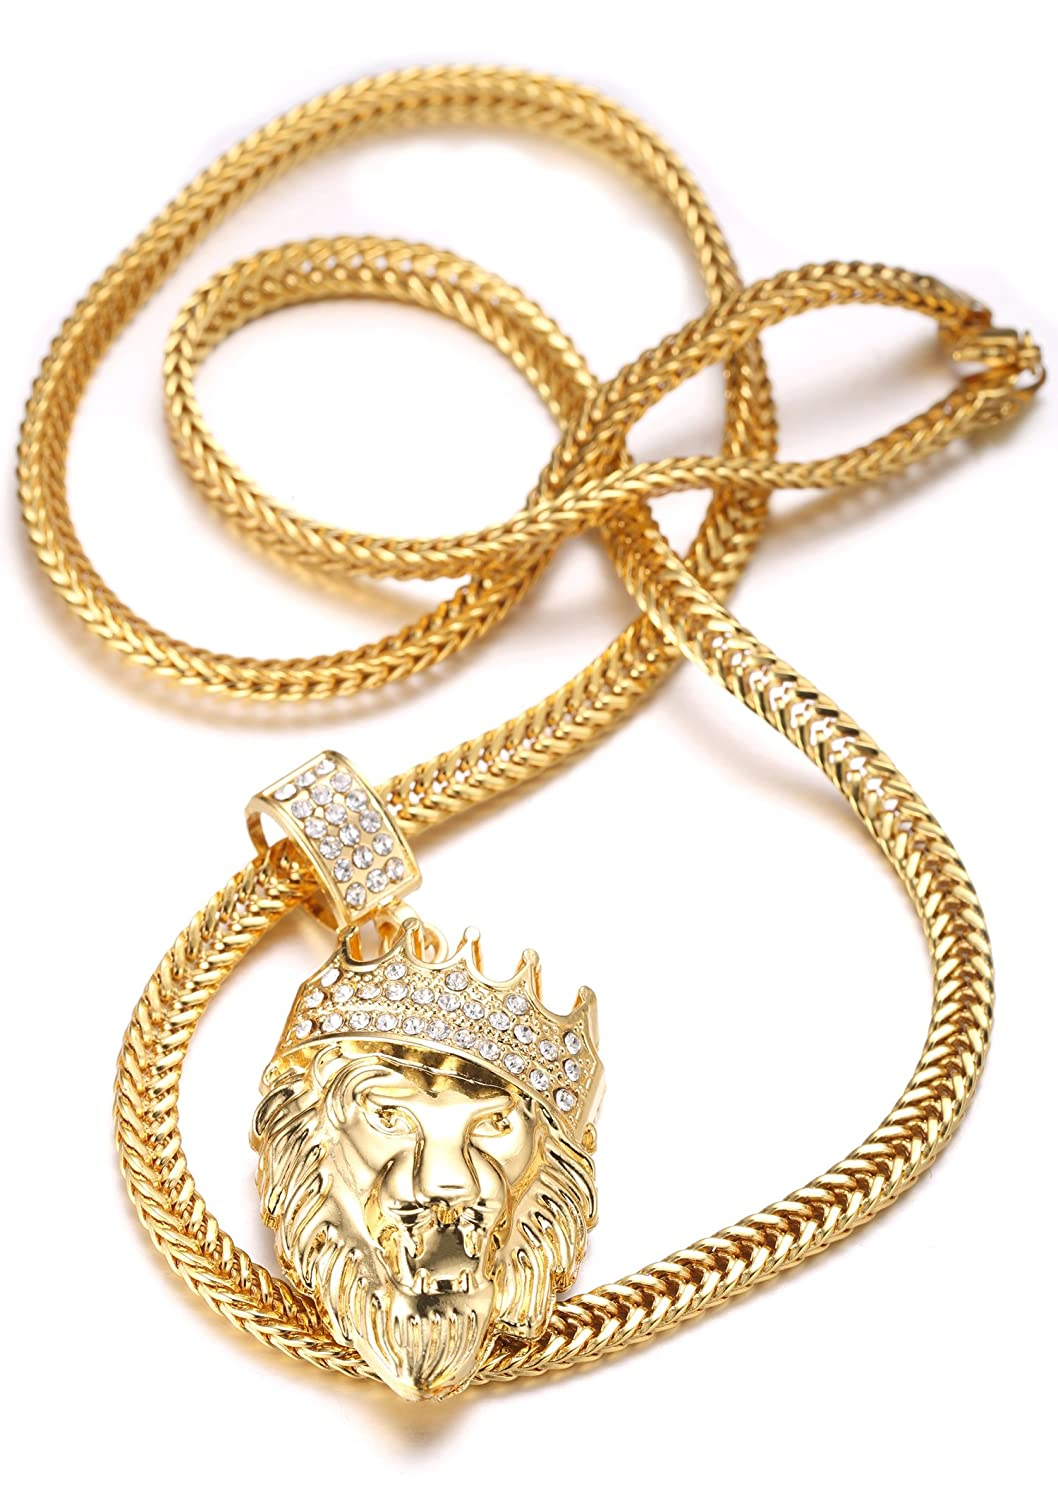 Halukakah mens 18k real gold plated kings landing crown lion halukakah mens 18k real gold plated kings landing crown lion pendant necklacecz inlaywith free fishtail chain 30 amazon joyera aloadofball Choice Image